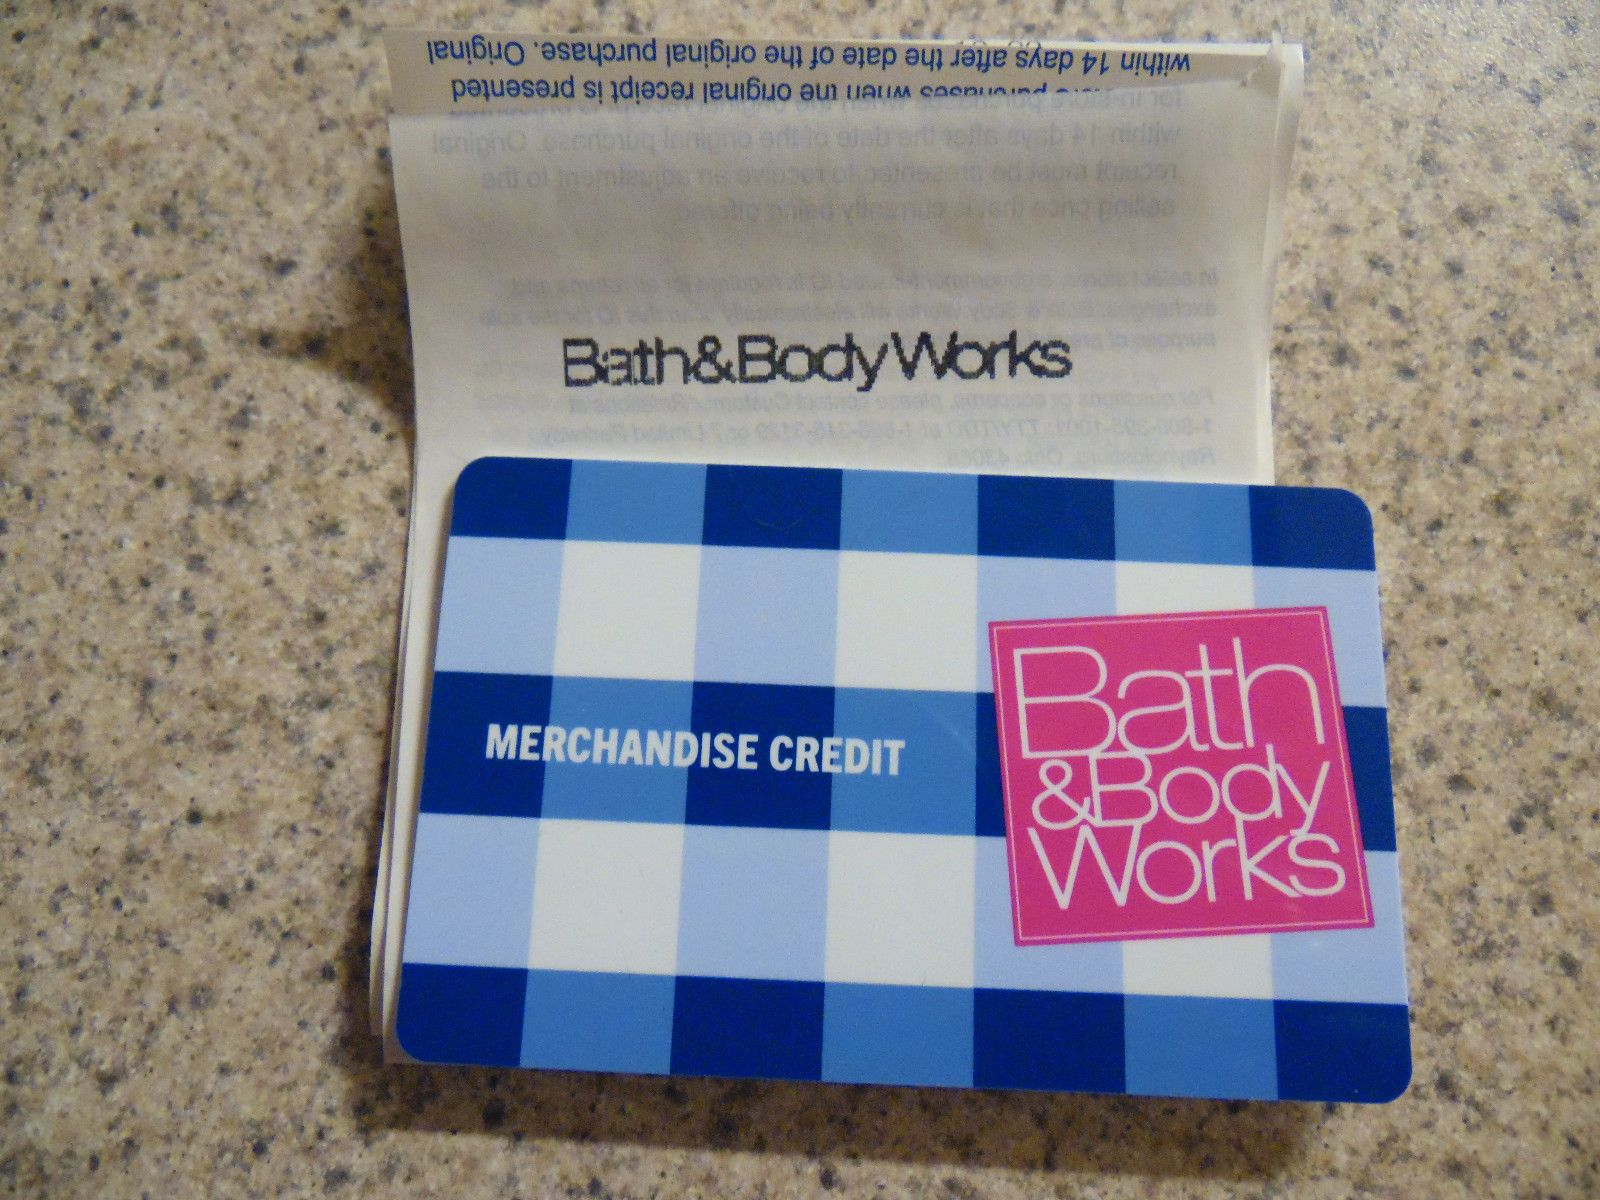 Coupons Giftcards Bath Body Works Merchandise Credit Card